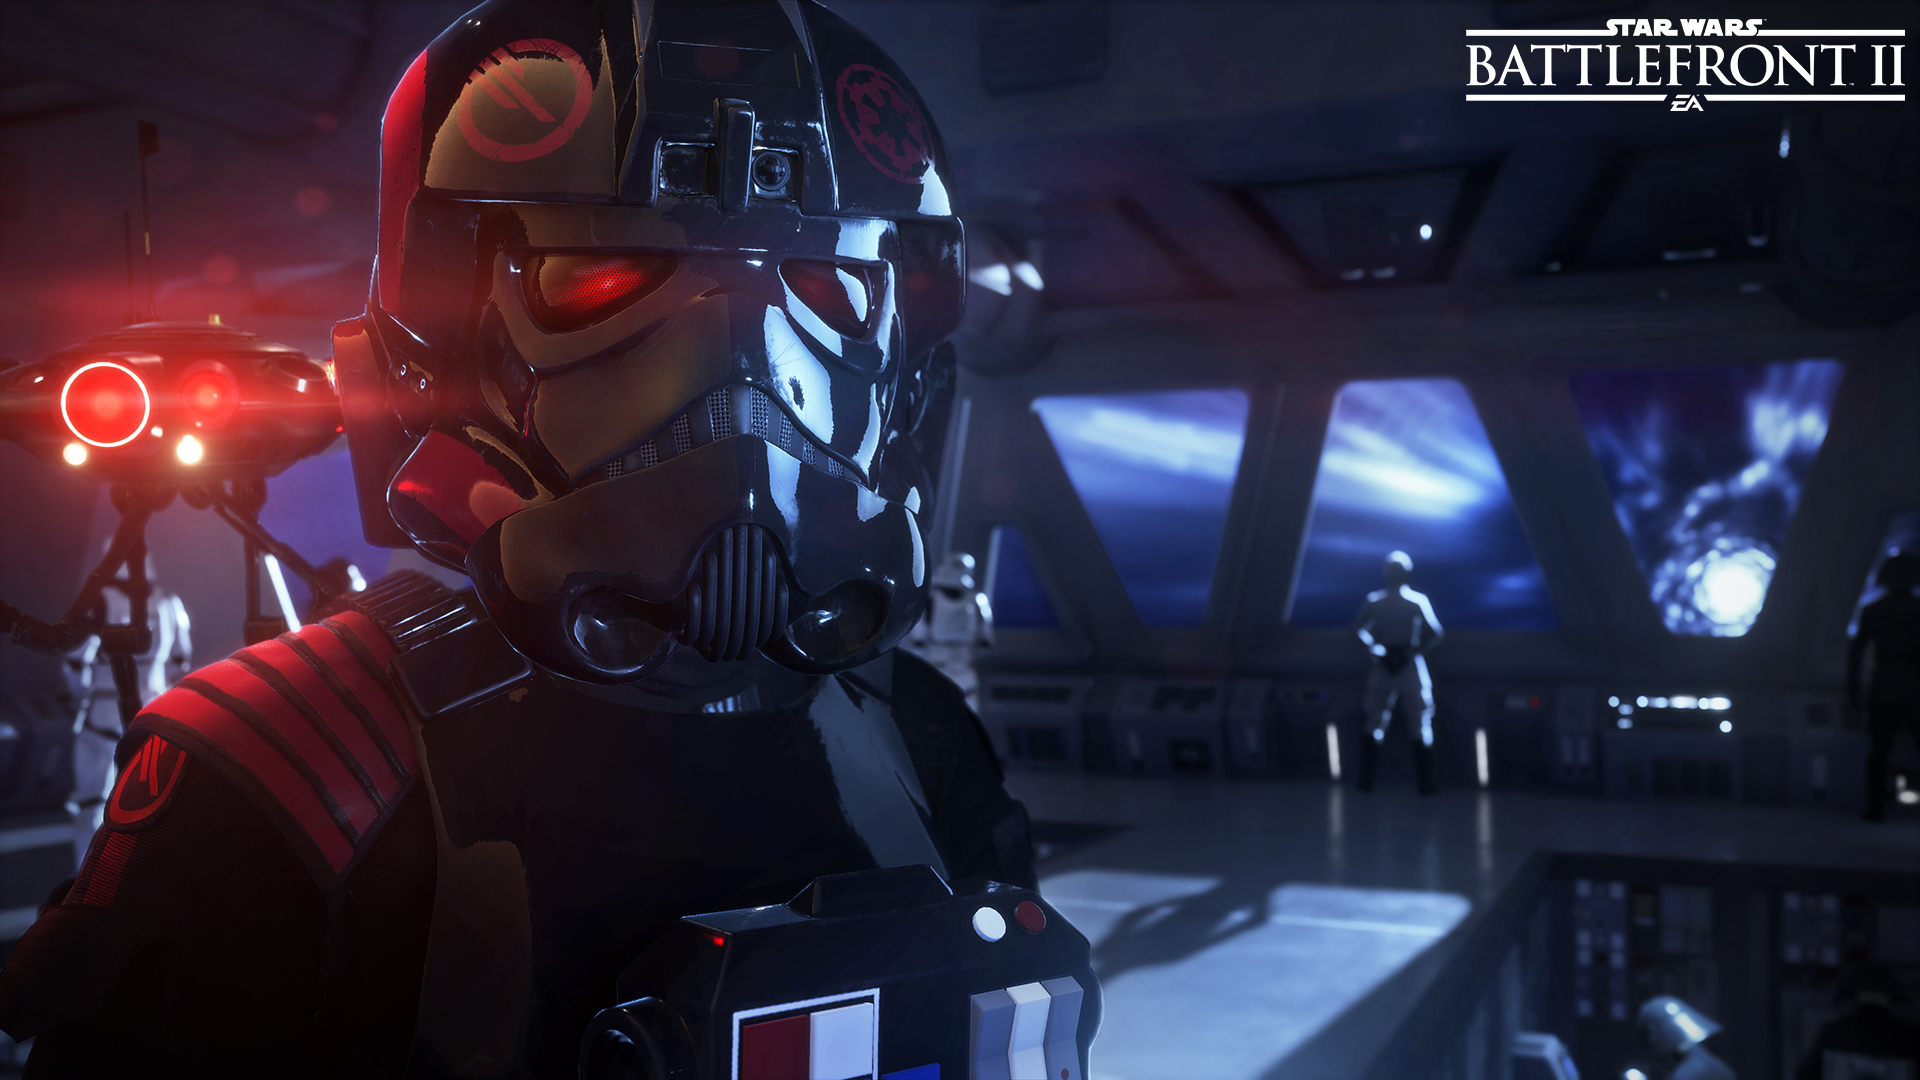 DICE brushed off question about Star Wars Battlefront II on the Nintendo Switch